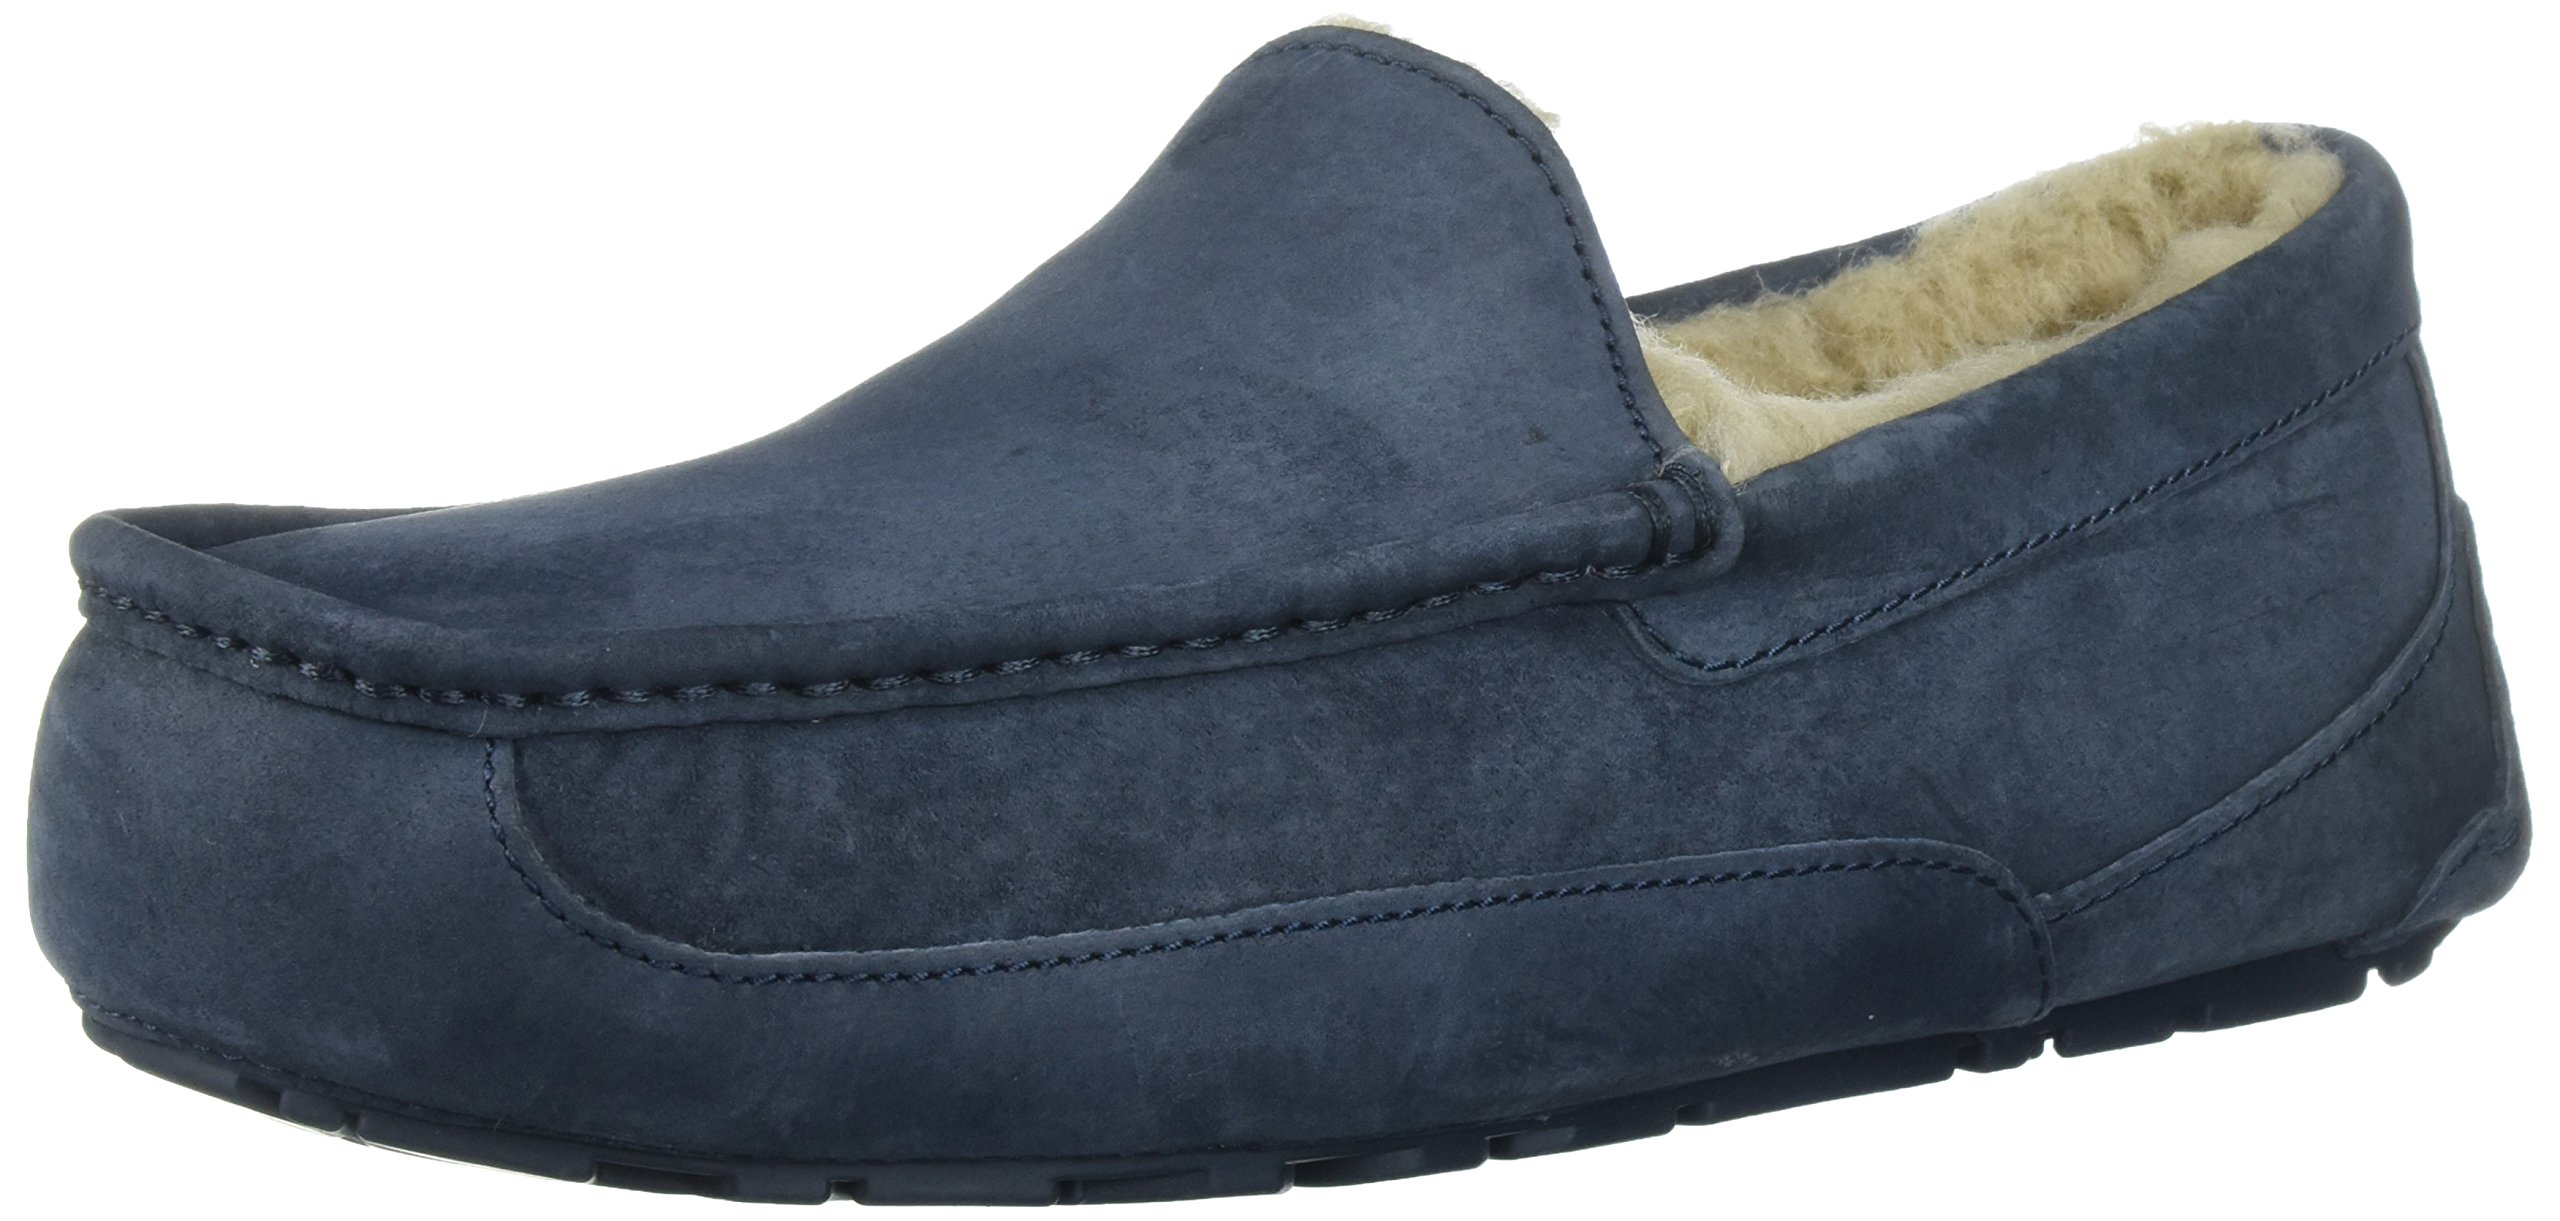 Ugg Men's Ascot Moccasin, NEW NAVY/NEW NAVY, 9 M US by UGG